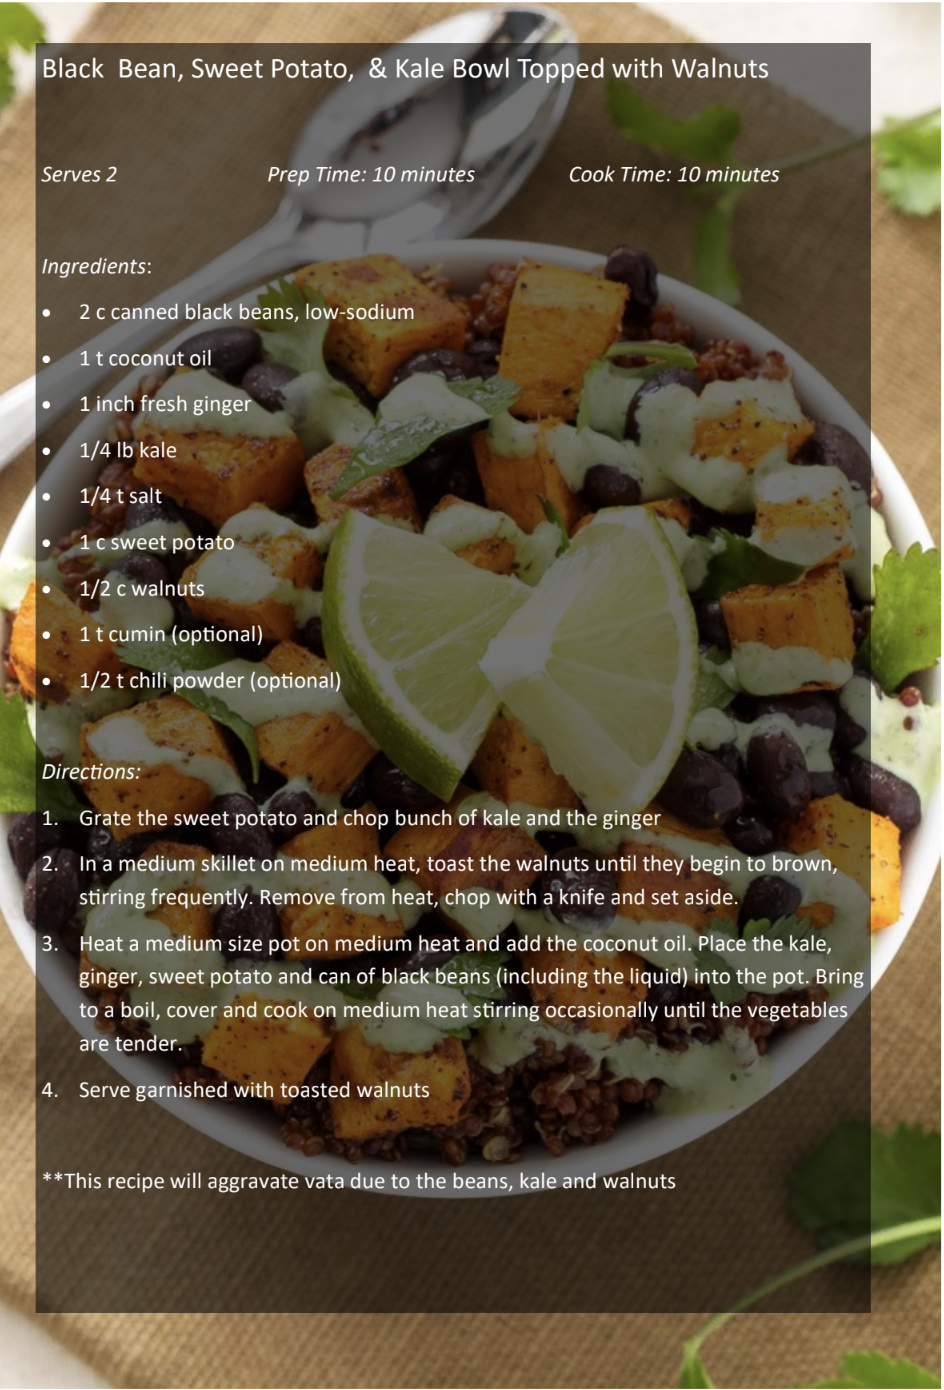 Black Bean, Sweet Potato & Kale Bowl Topped with Walnuts.png